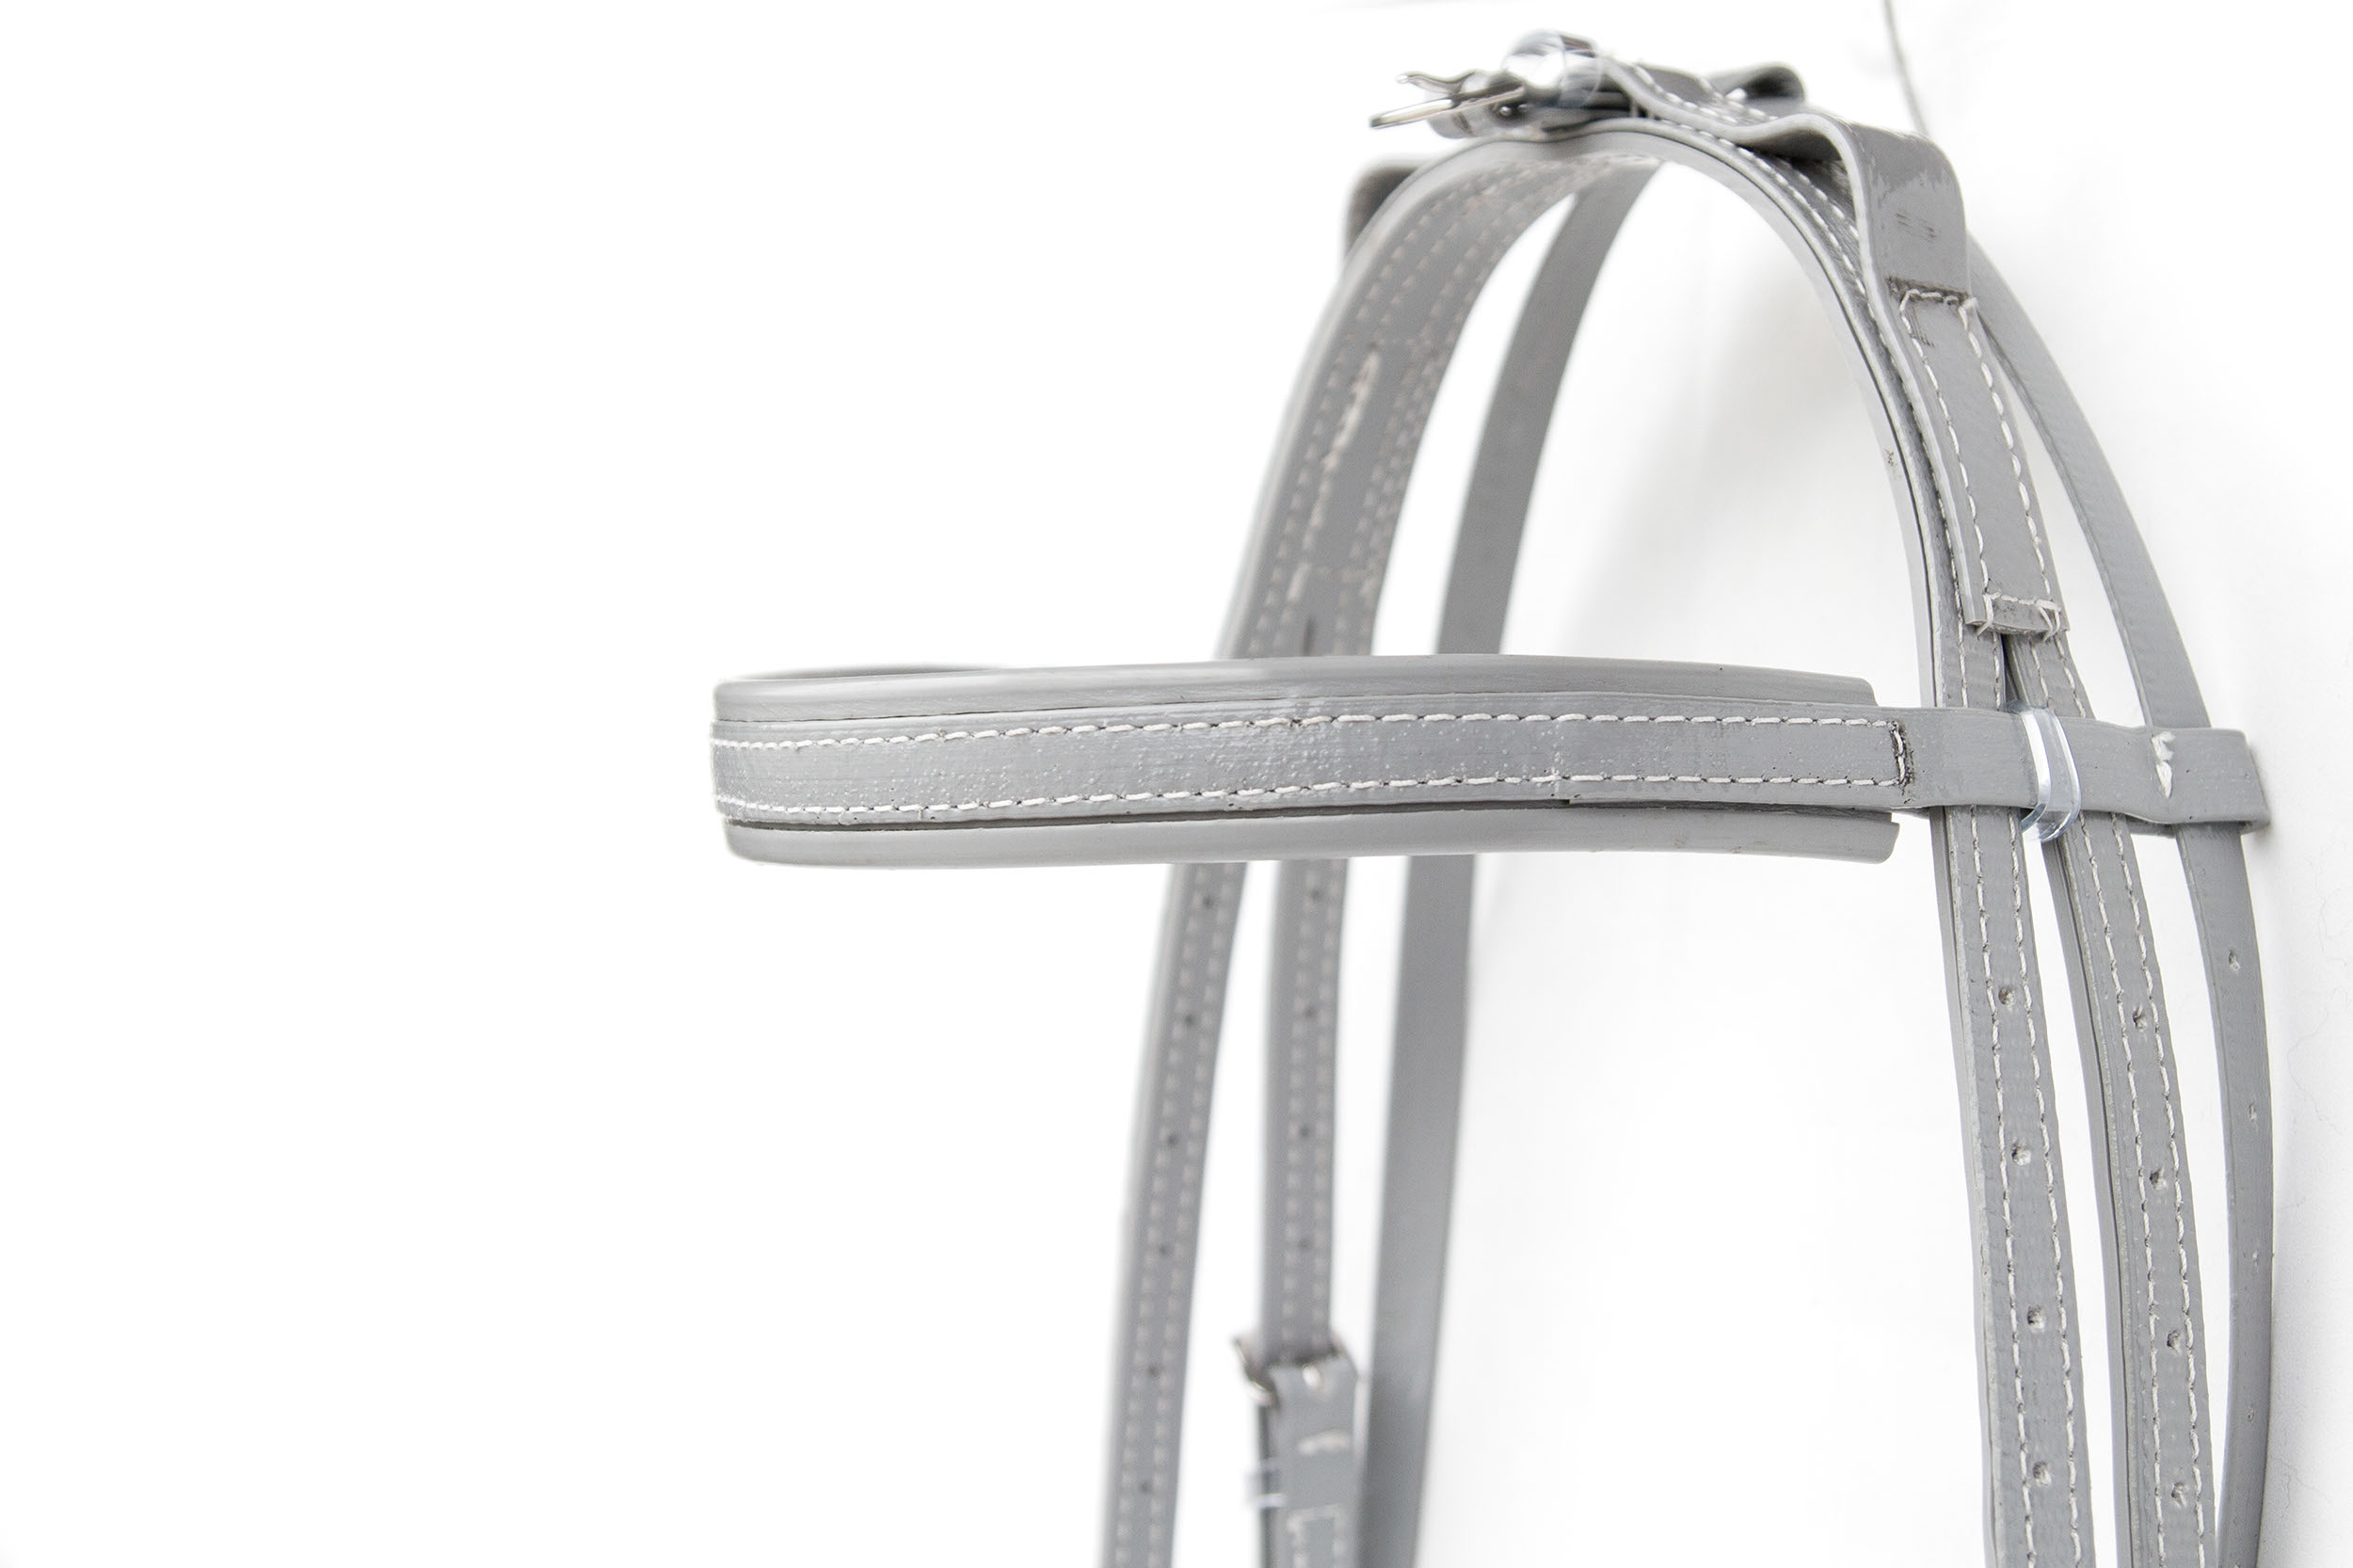 Harness-QH-Grey-Black-21.jpg